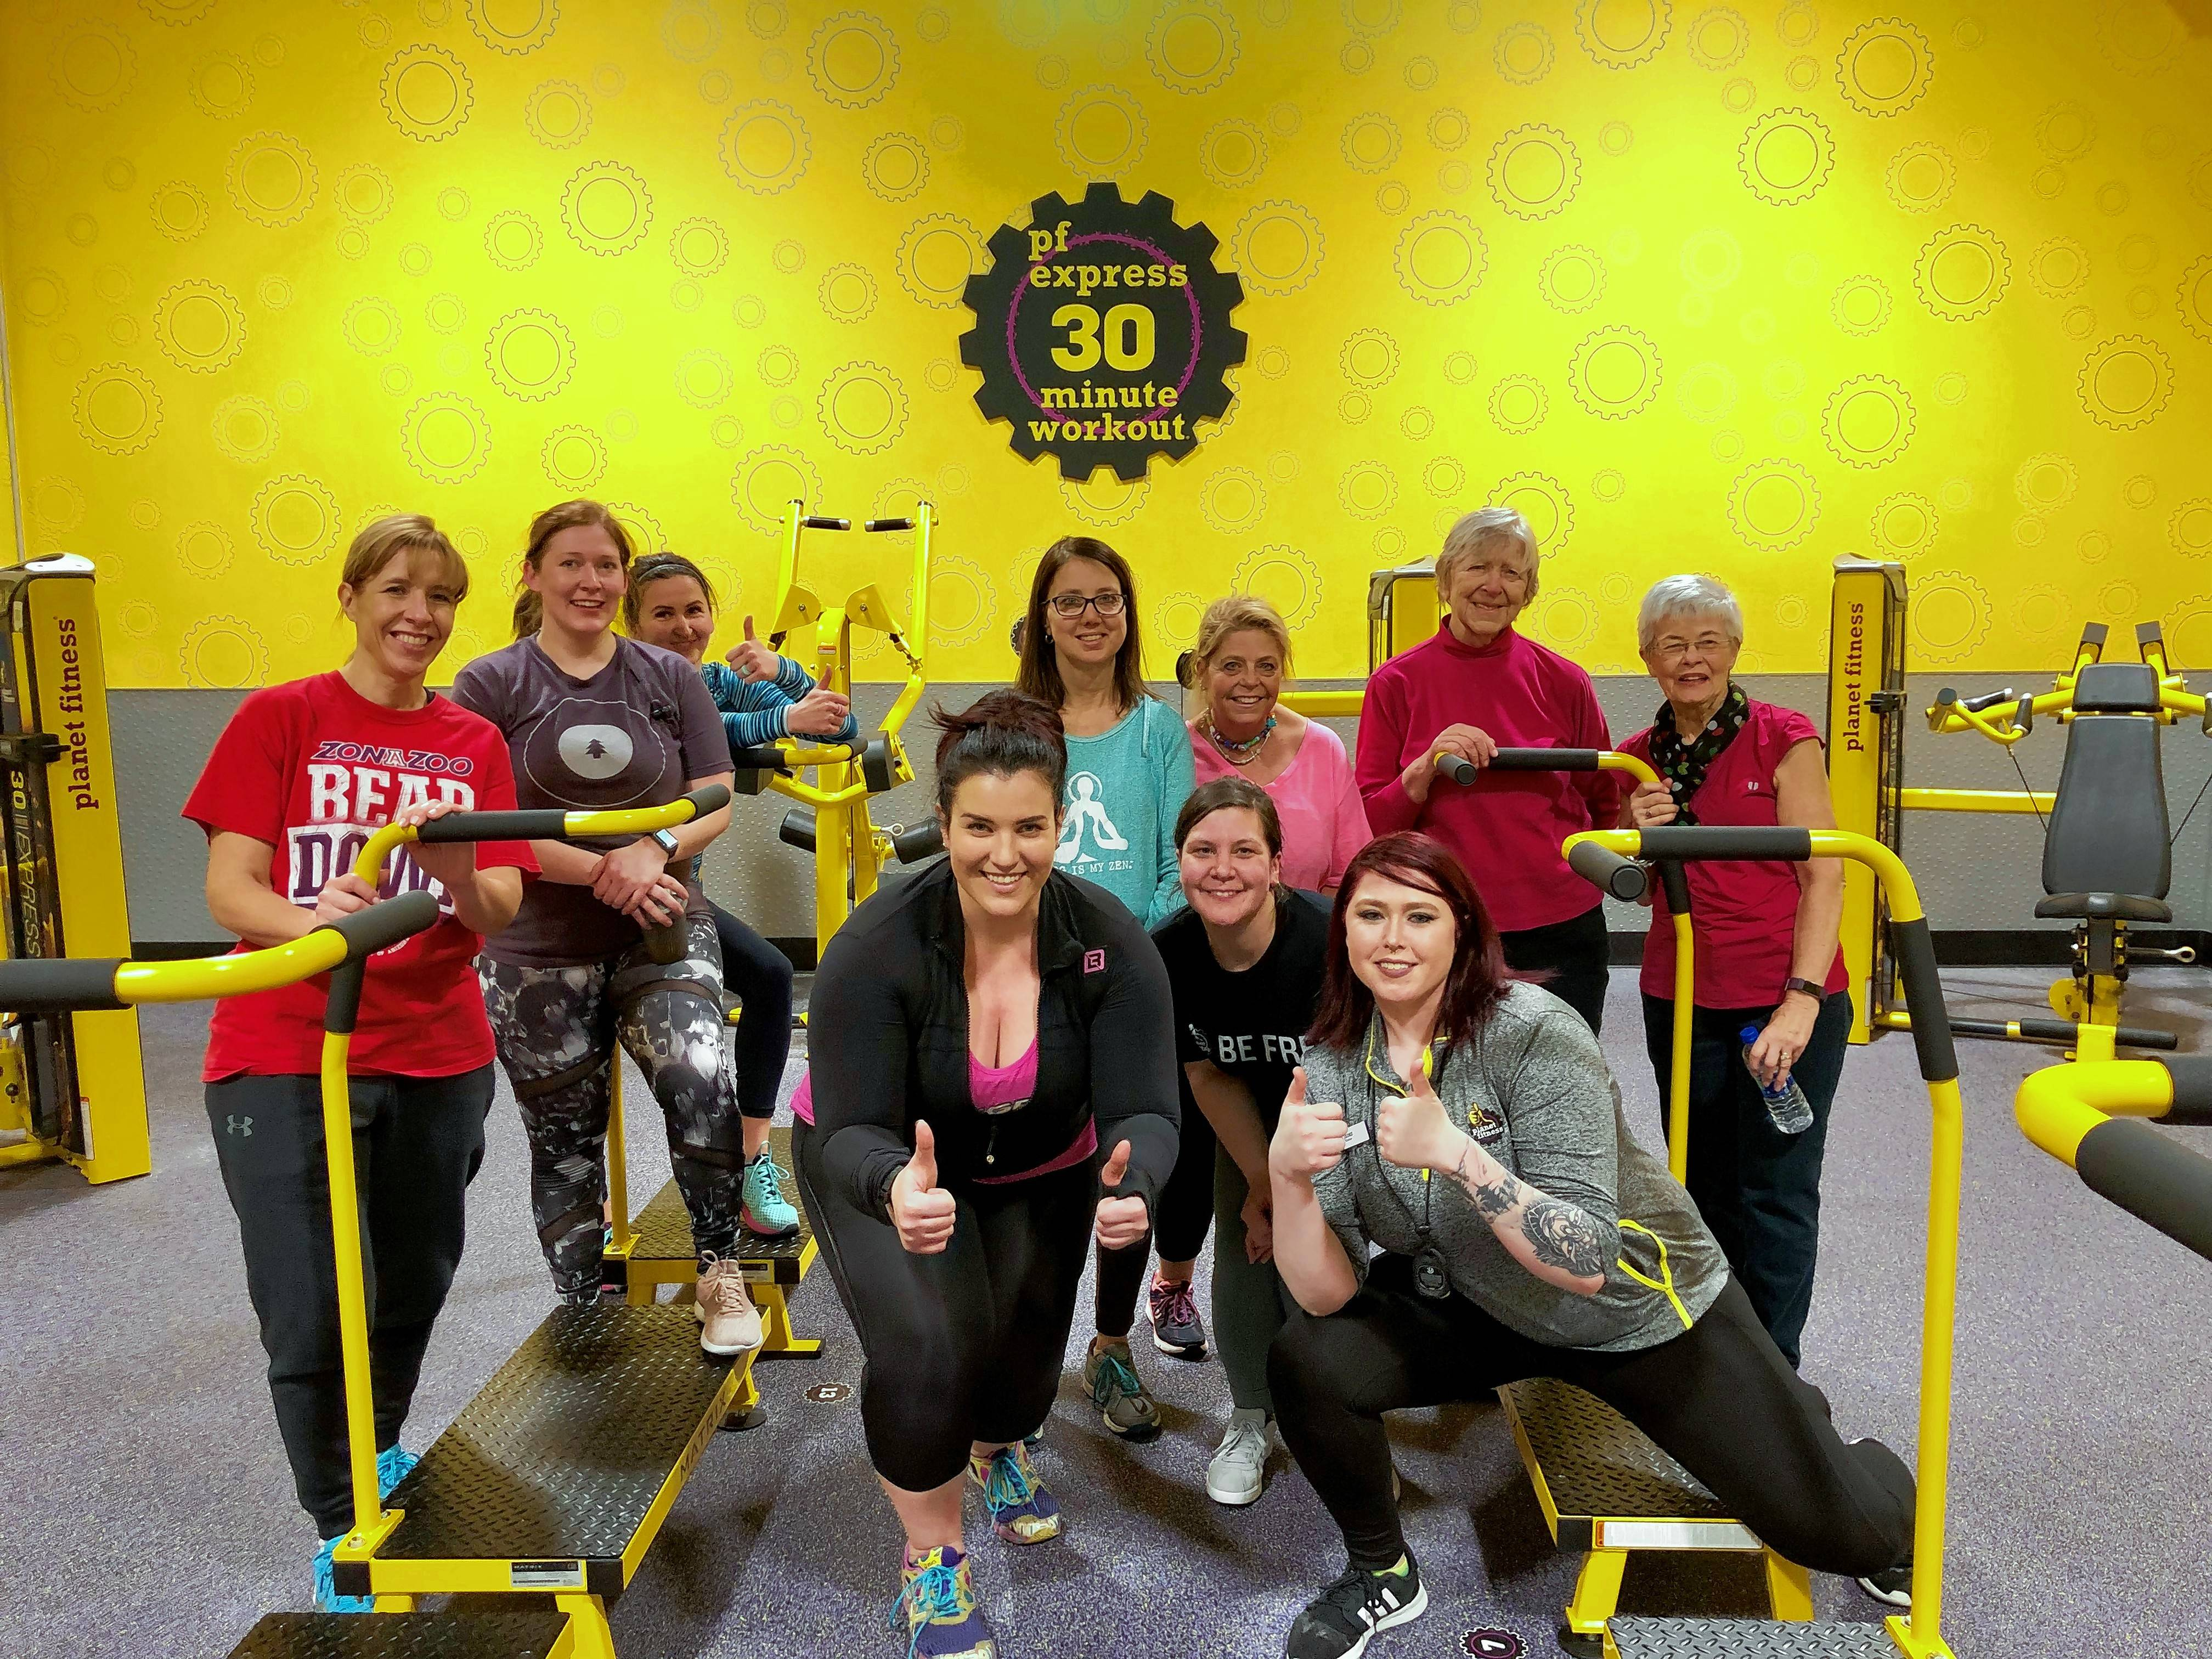 """Biggest Loser"" winner Danni Allen, center in black, led a workout session Tuesday, Feb. 12, after the grand opening of Planet Fitness in Elk Grove Village."